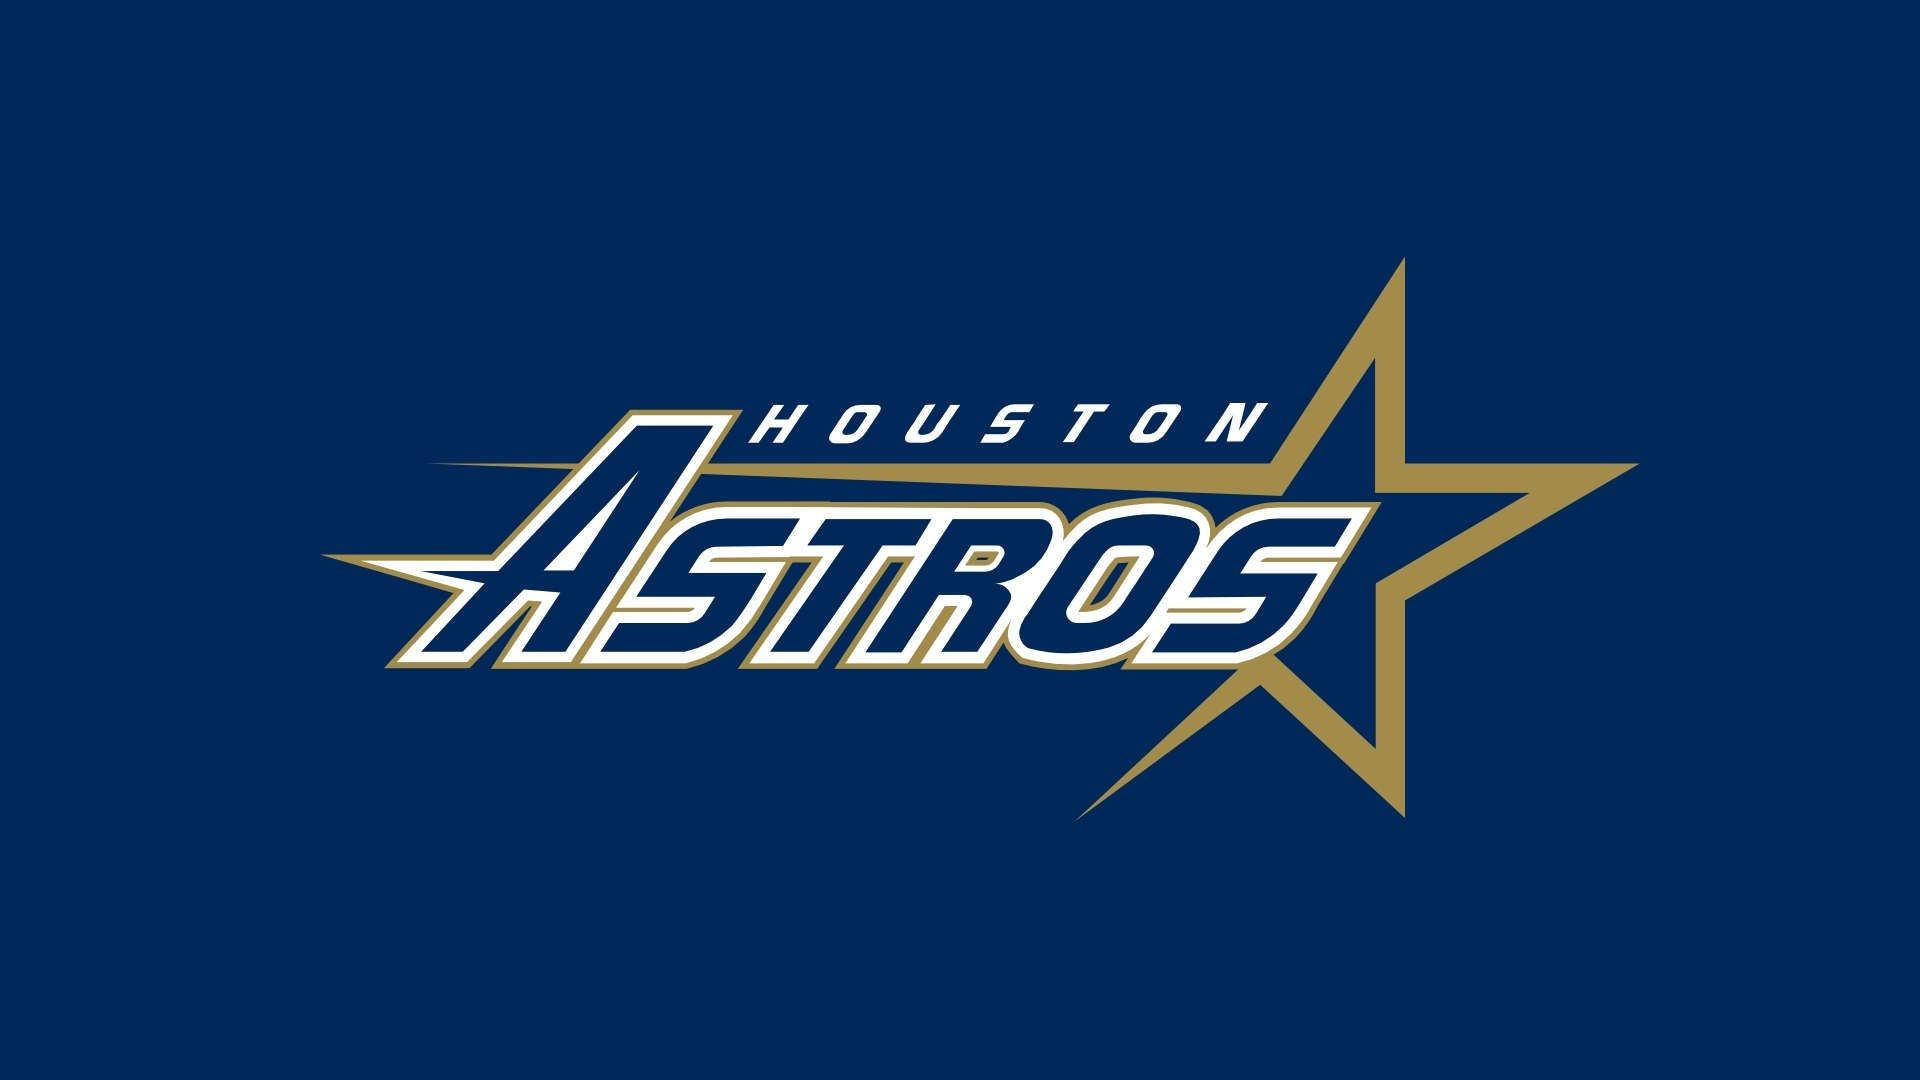 houston astros hd wallpaper Mlb baseball logo, Logos